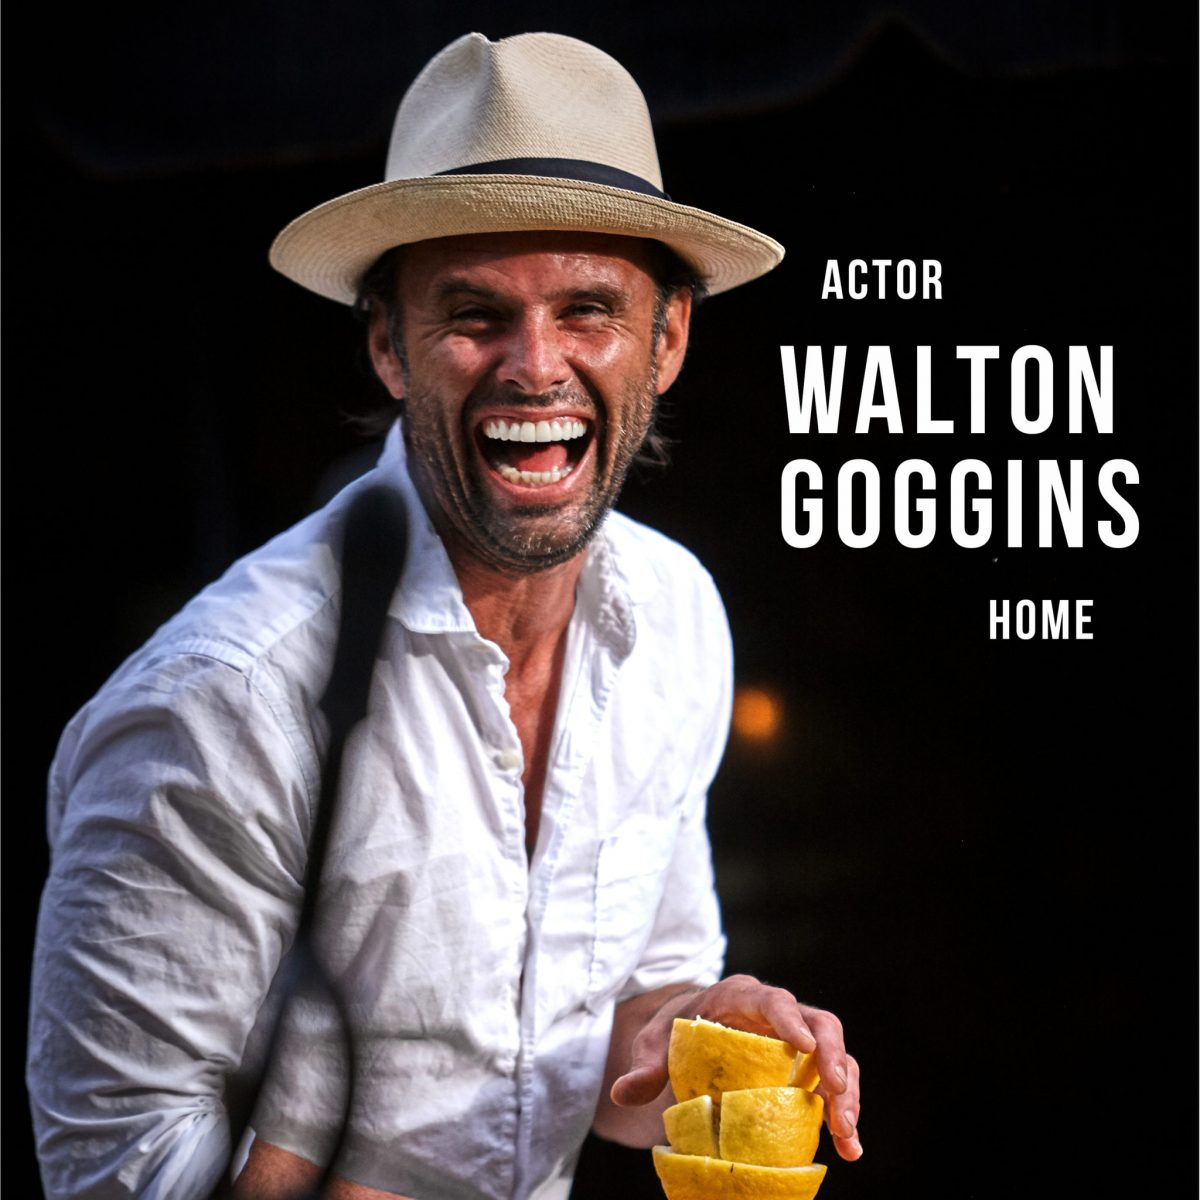 Actor Walton Goggins house in LA